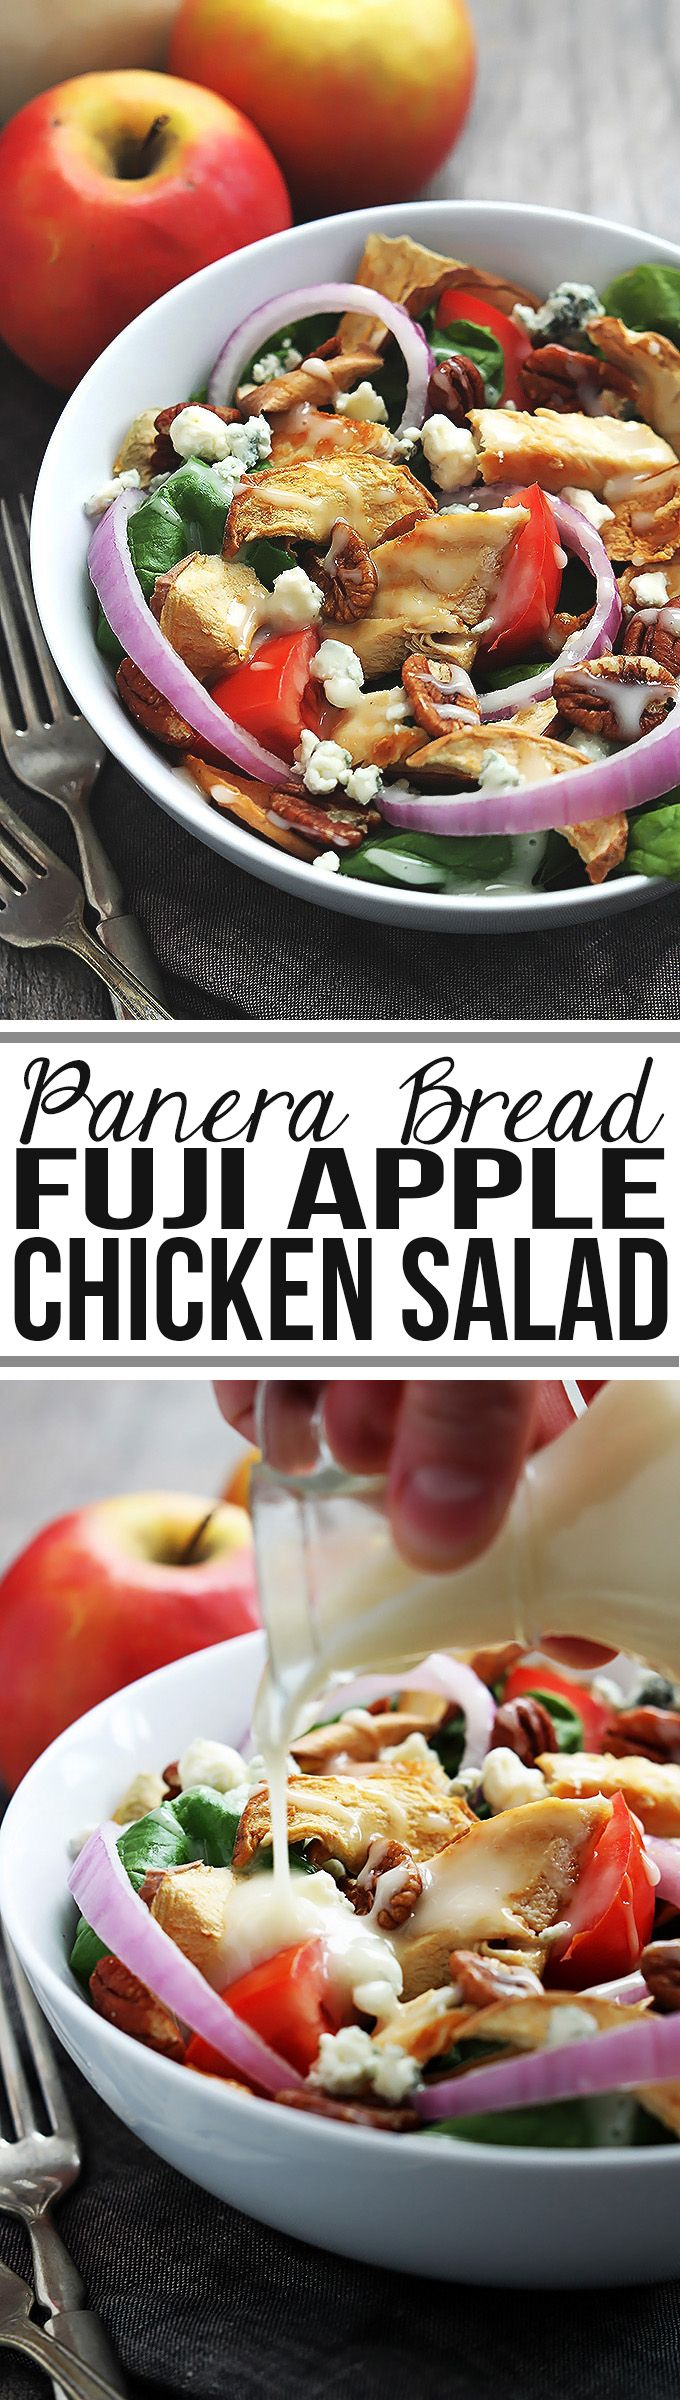 Panera Bread's Fuji Apple Chicken Salad - easy, healthy, and soooo yummy!